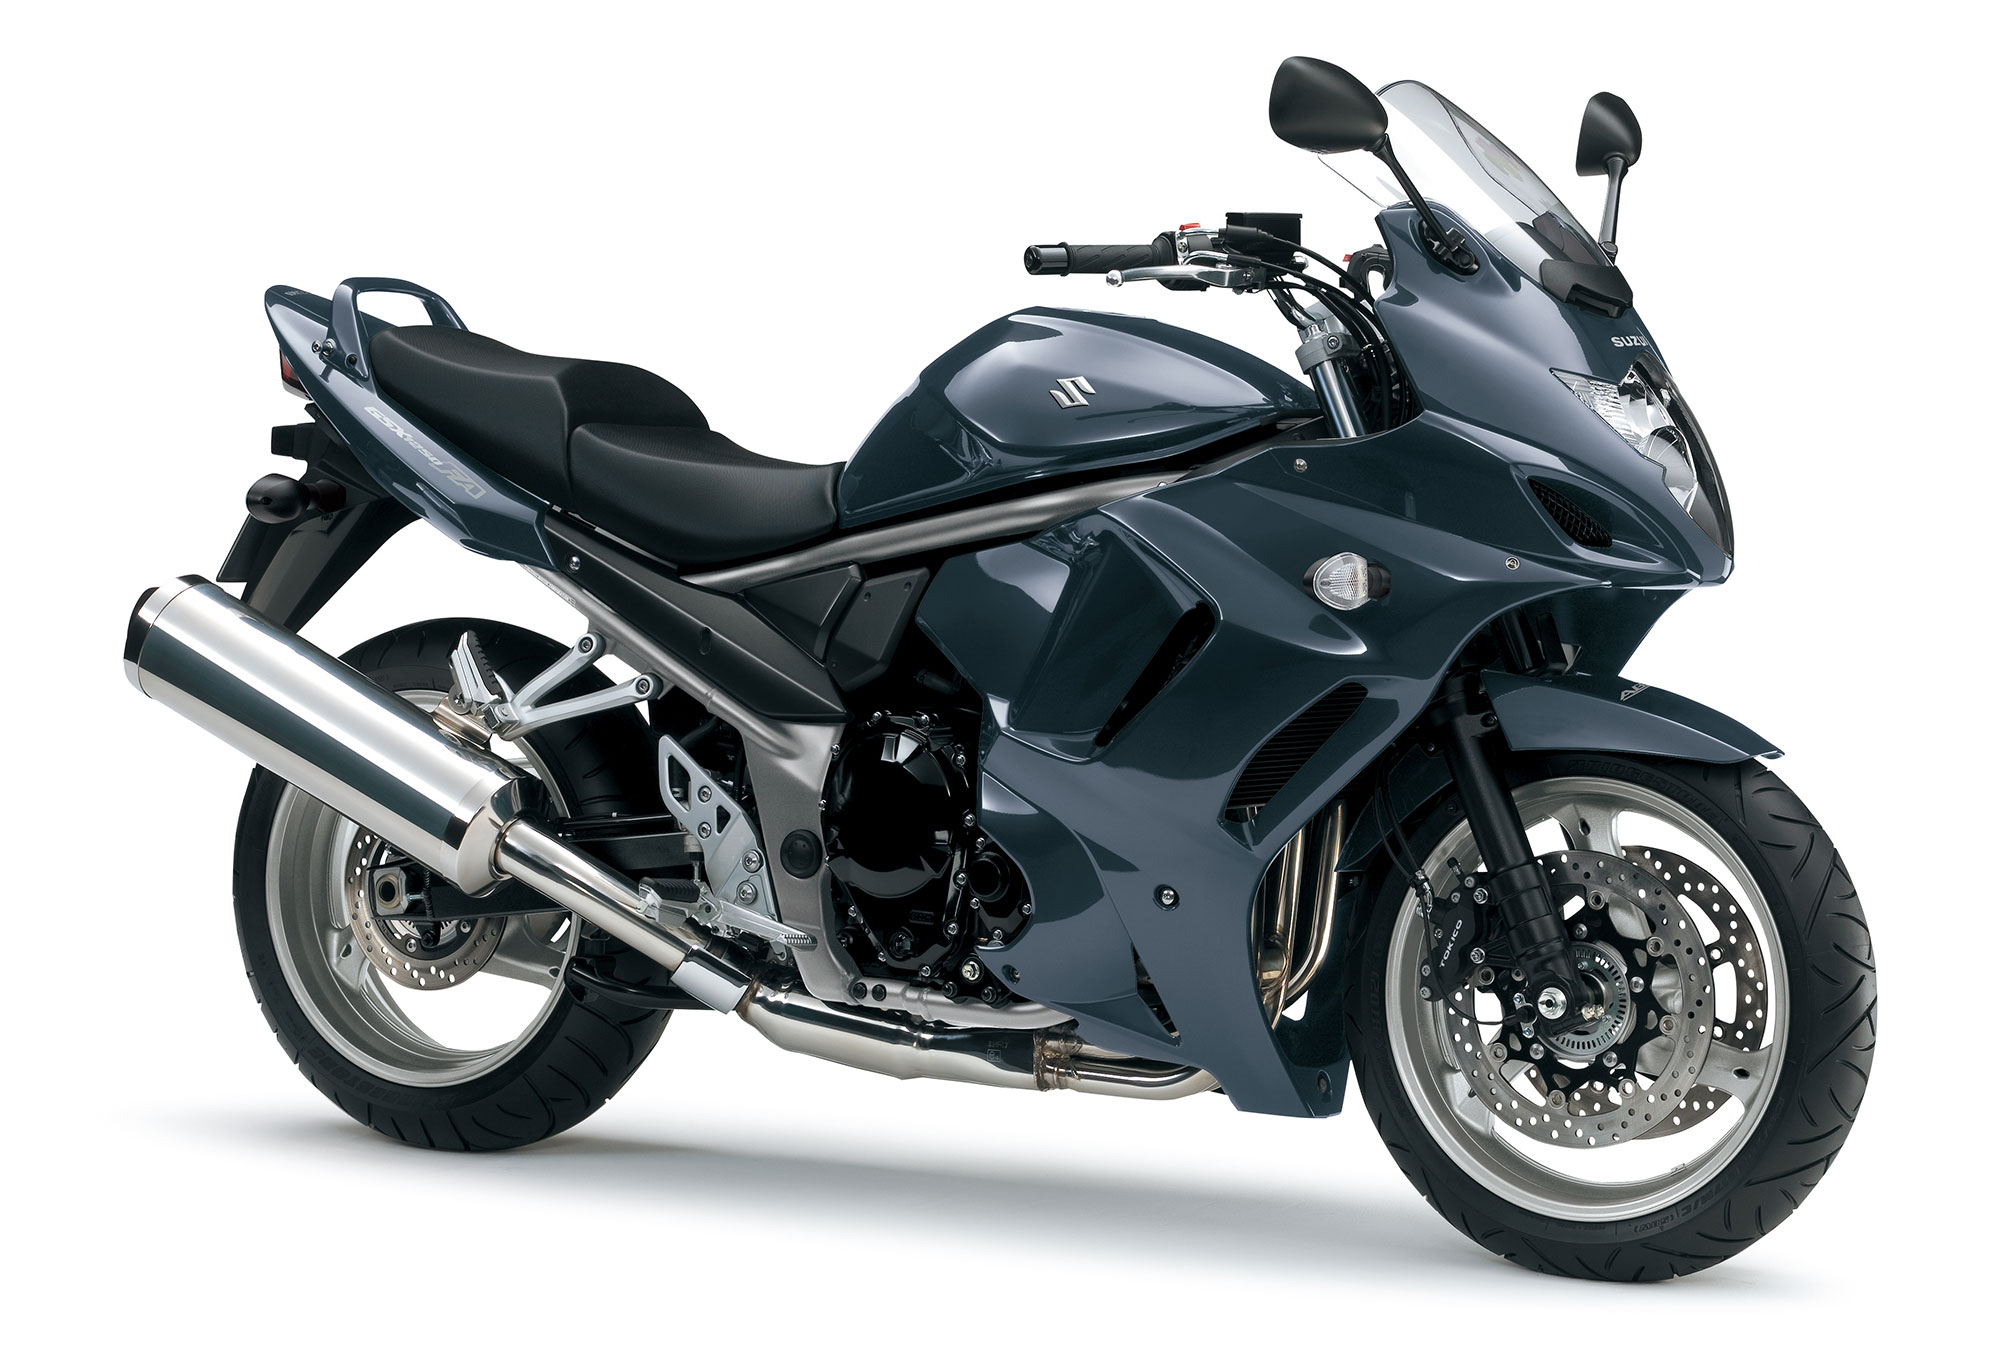 suzuki gsx 1250 fa pics specs and list of seriess by. Black Bedroom Furniture Sets. Home Design Ideas